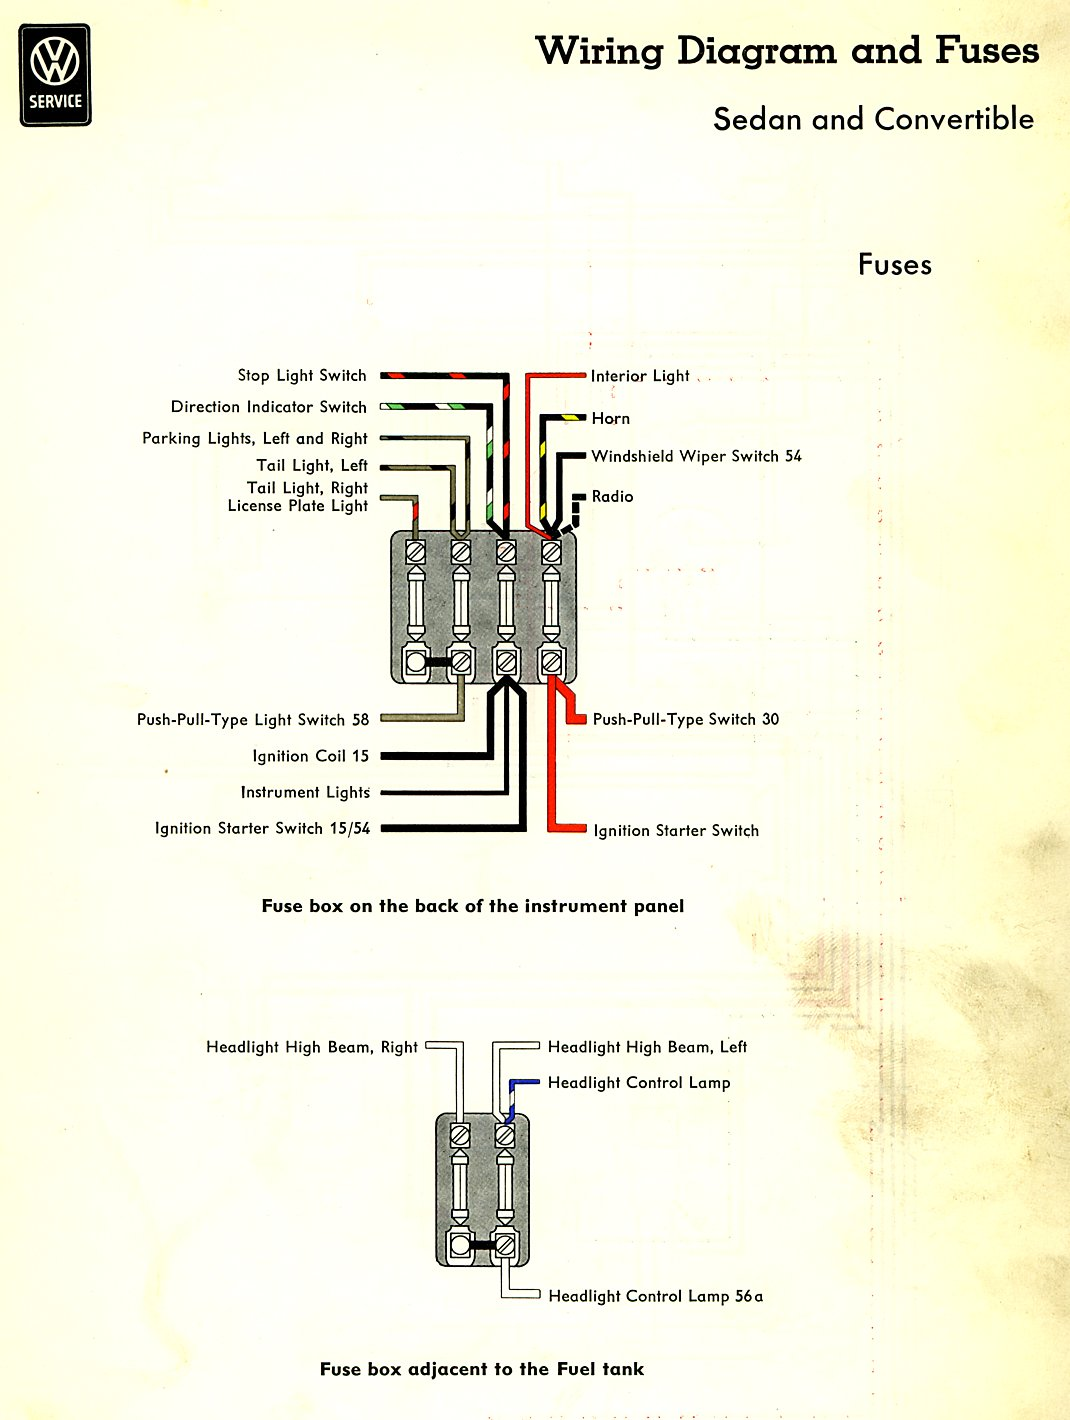 1973 Vw Beetle Door Diagram Schematic Wiring Diagrams 1963 Thesamba Com Type 1 Rh 1964